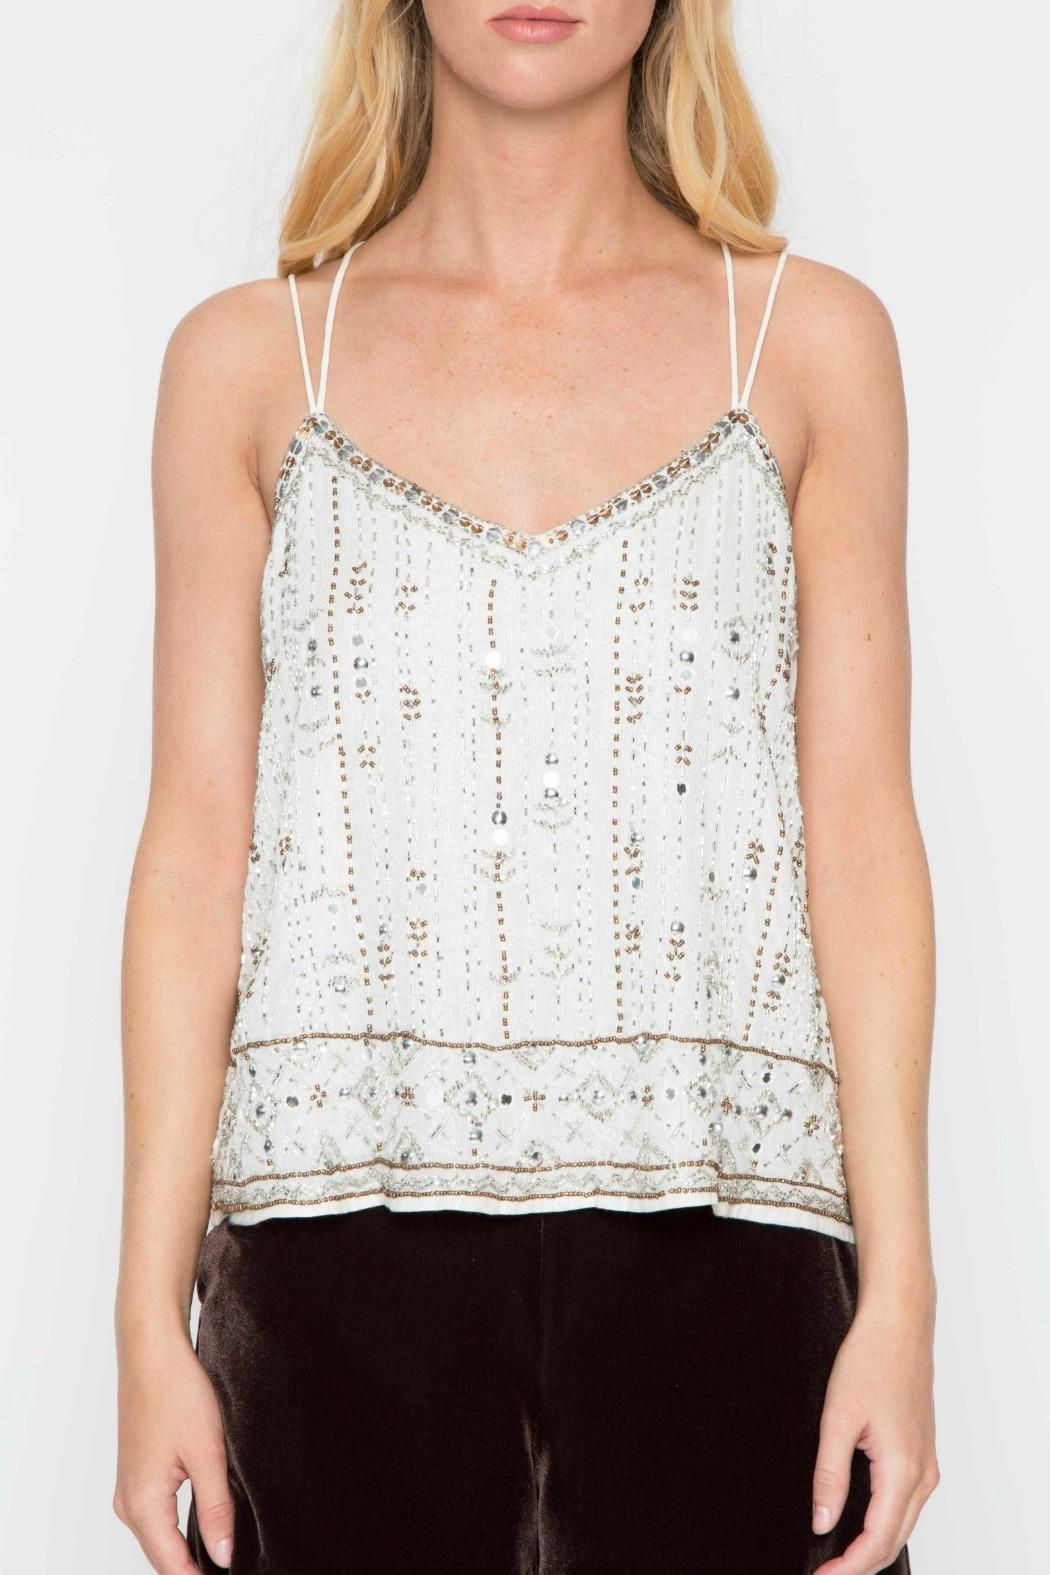 Gorgeous beaded tank with delicate straps, crisscross back and intricate beaded embroidery. A bit of glitz for your everyday tank.   Beaded Cami by Willow & Clay. Clothing - Tops - Tees & Tanks Clothing - Tops - Night Out New Jersey